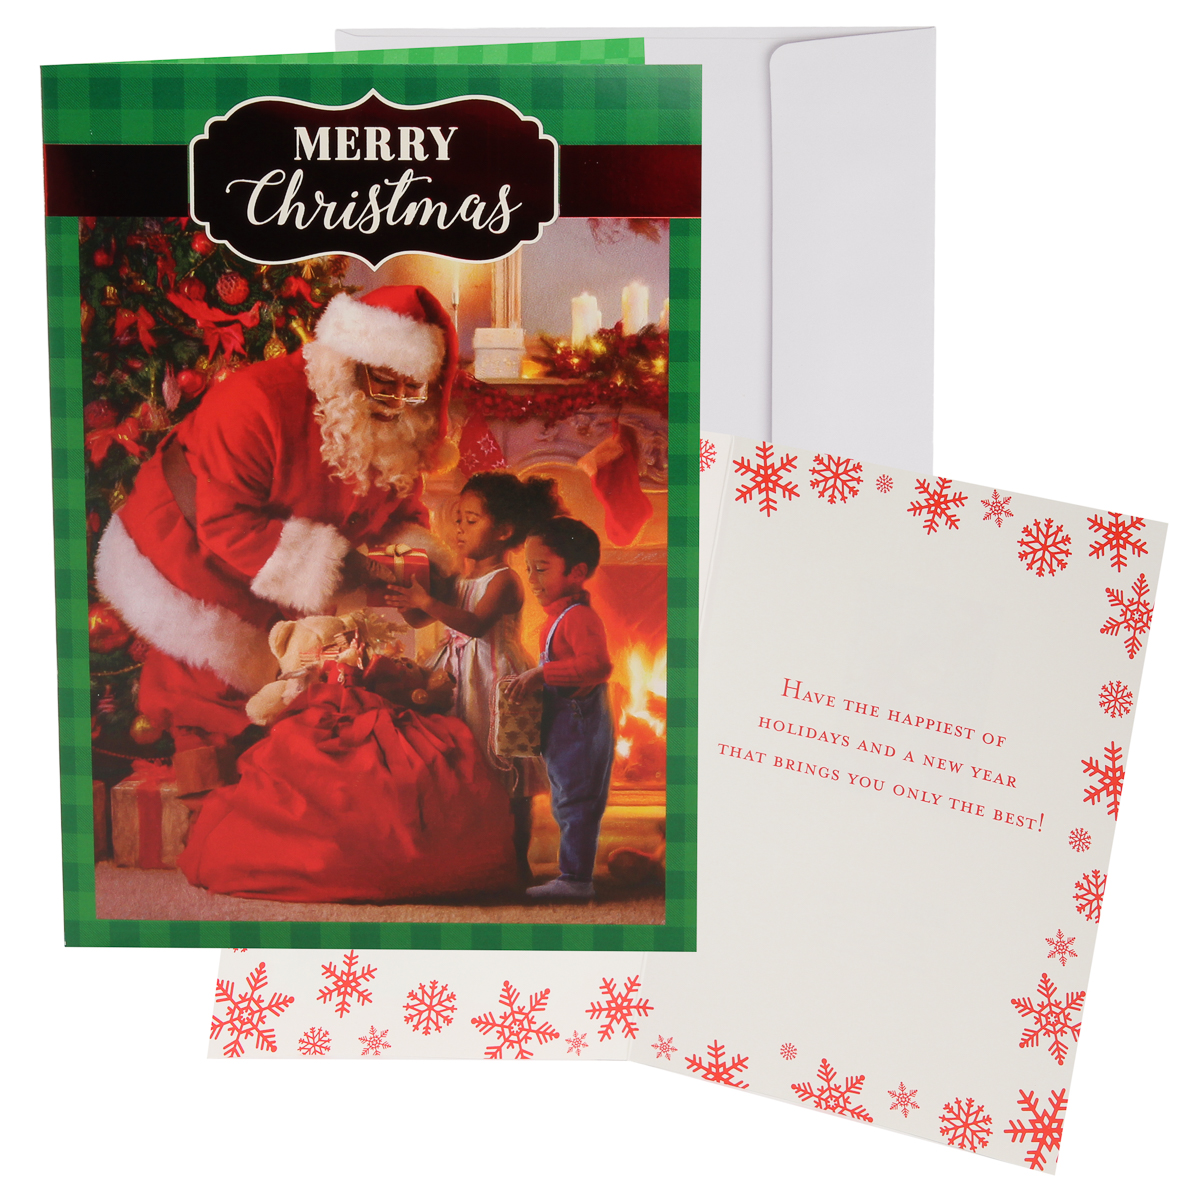 48pk-Merry-Christmas-Cards-Bulk-Assortment-Holiday-Card-Pack-with-Foil-amp-Glitter thumbnail 11